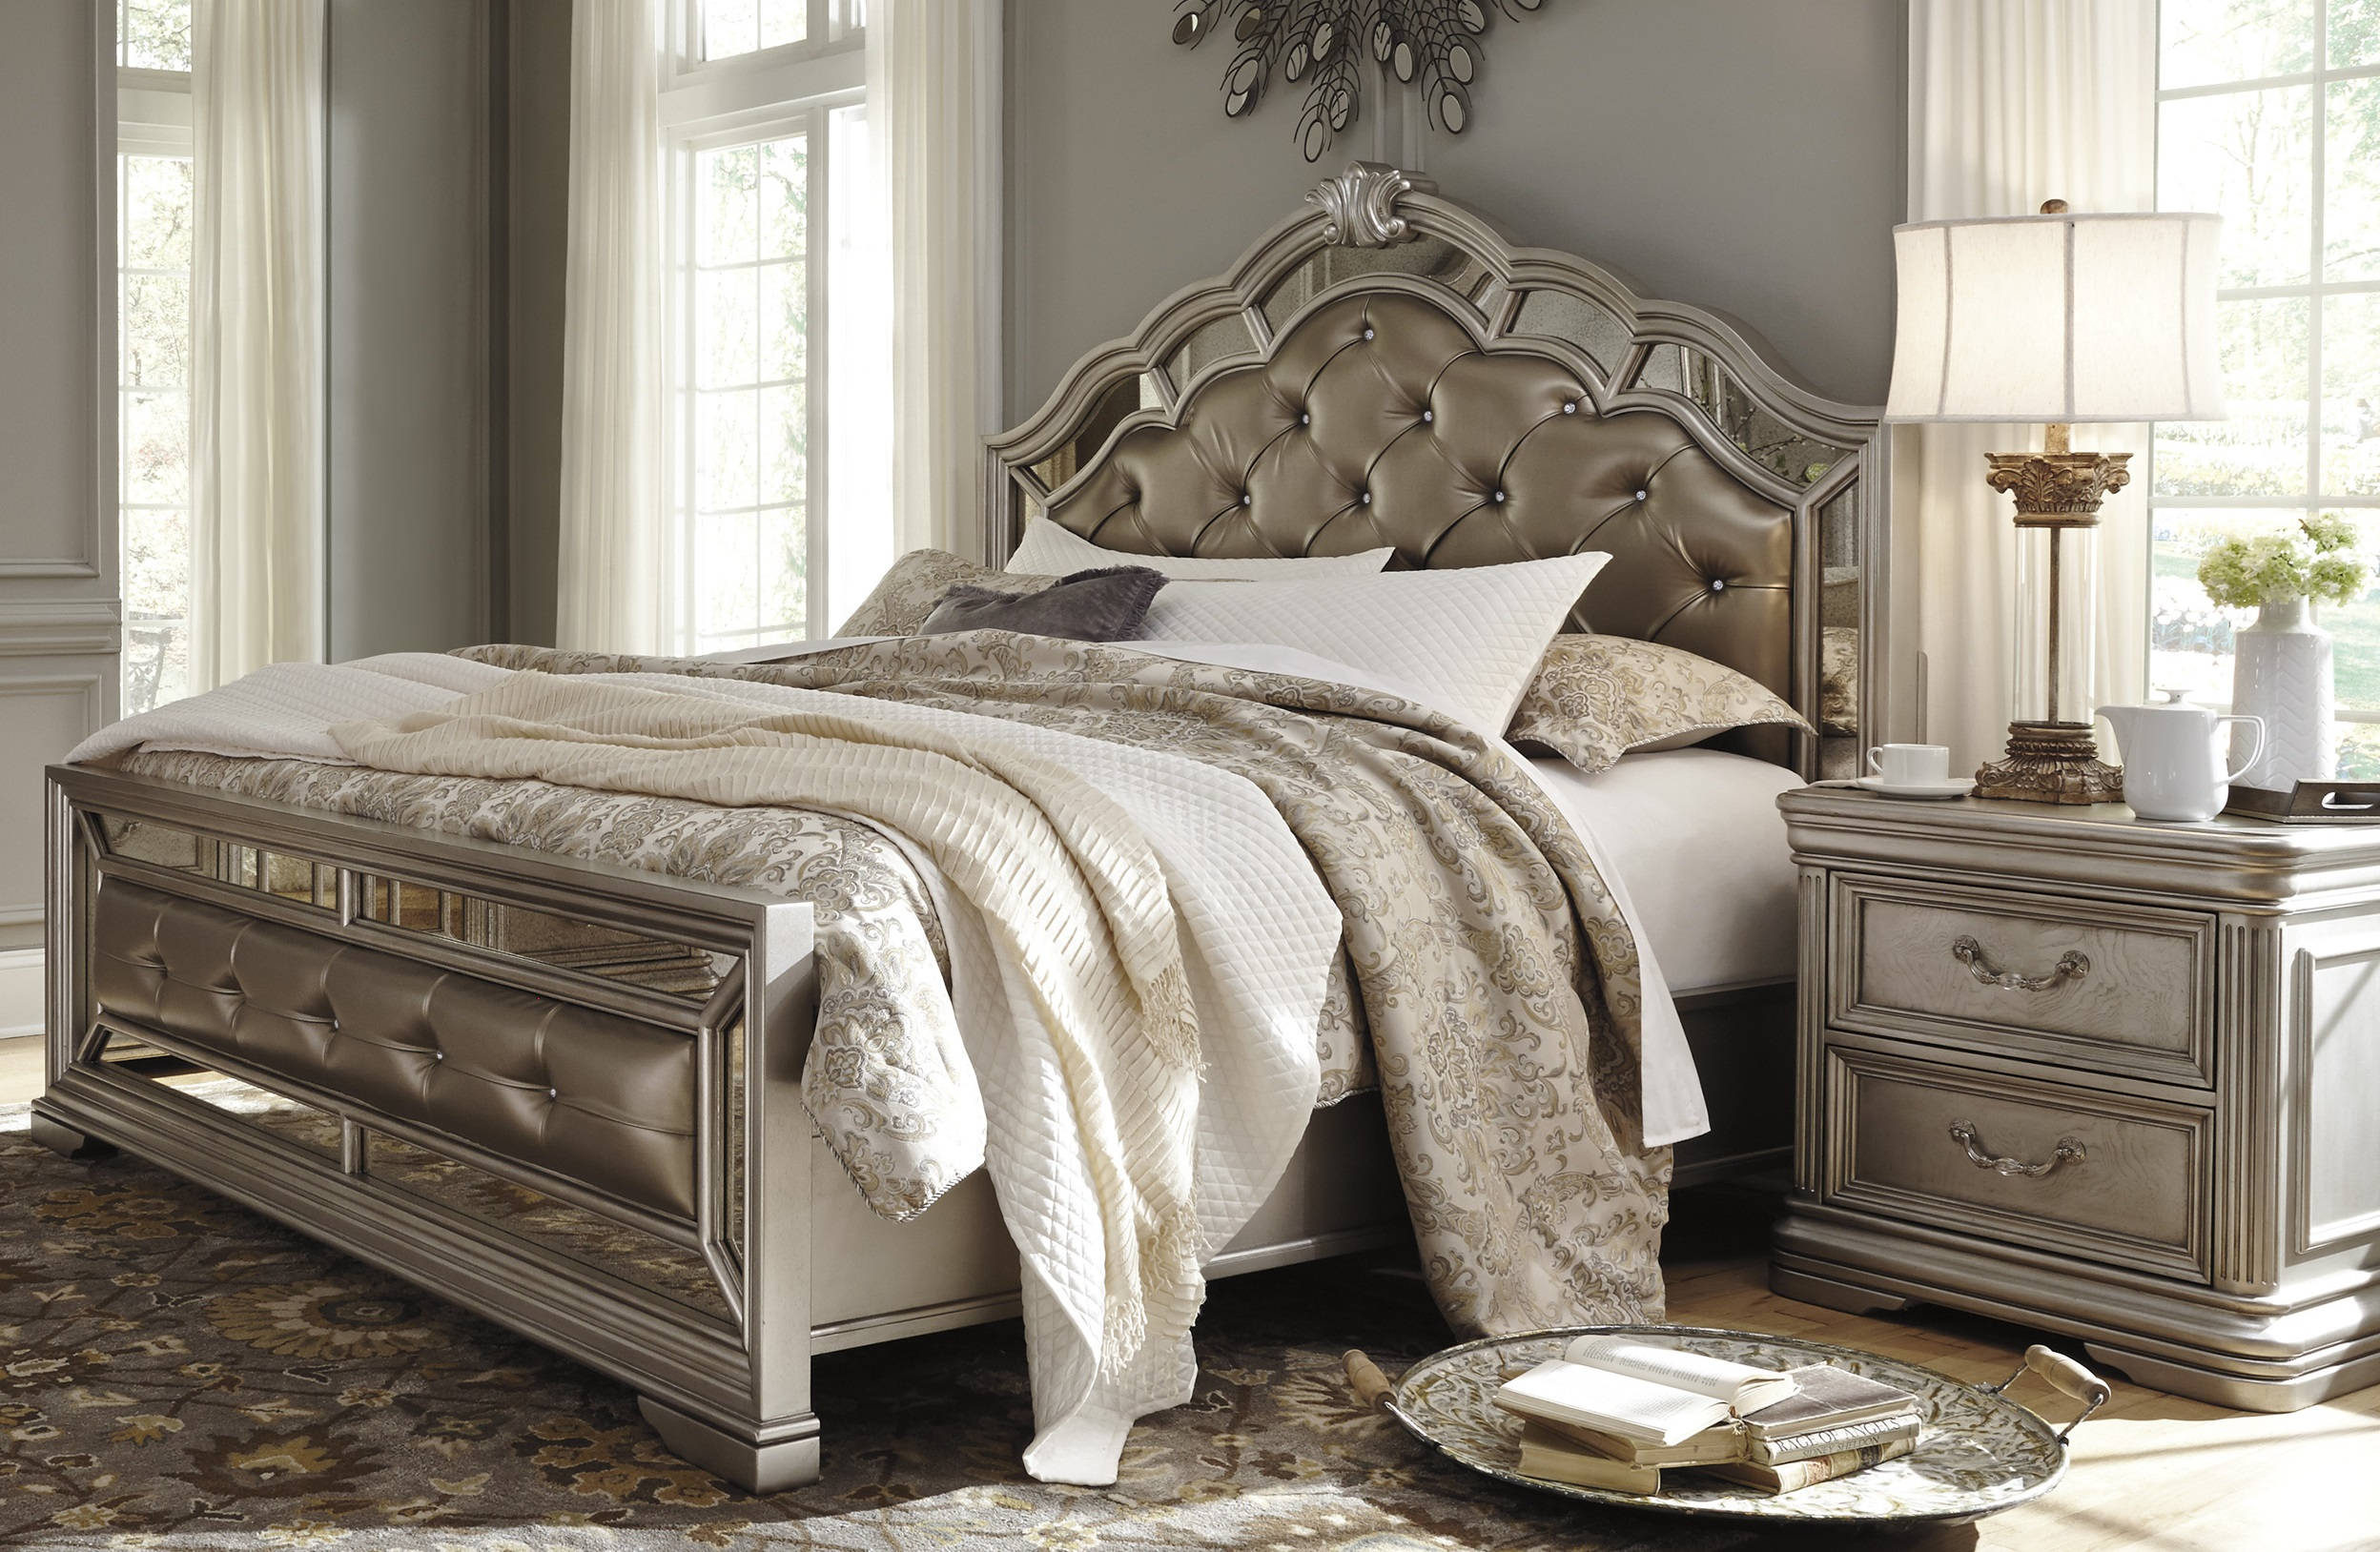 Ashley Furniture Birlanny Silver 2pc Bedroom Set With Cal King Bed